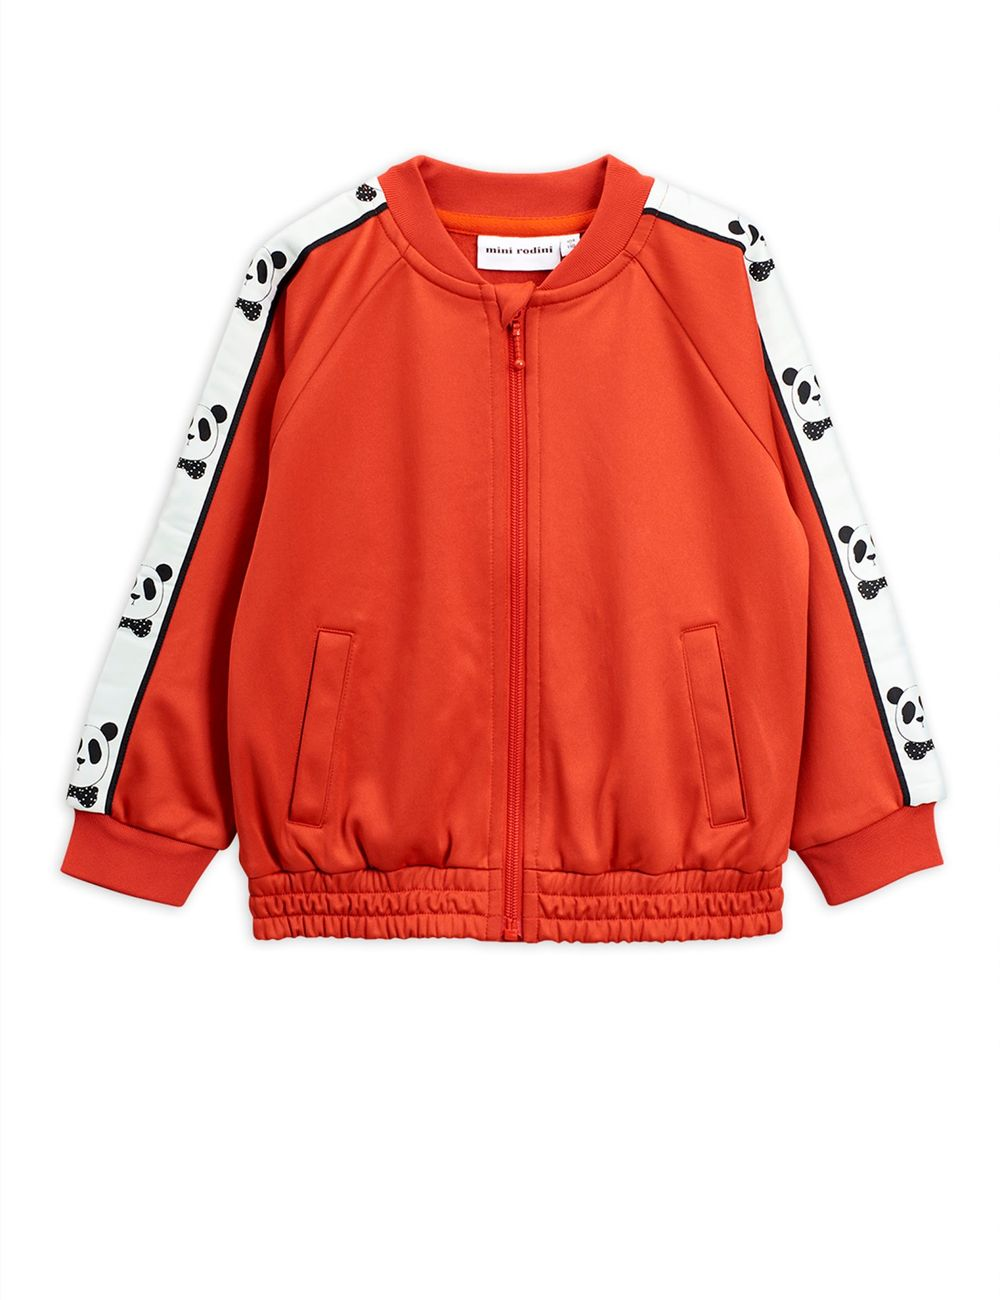 MINI RODINI PANDA WCT JACKET, RED